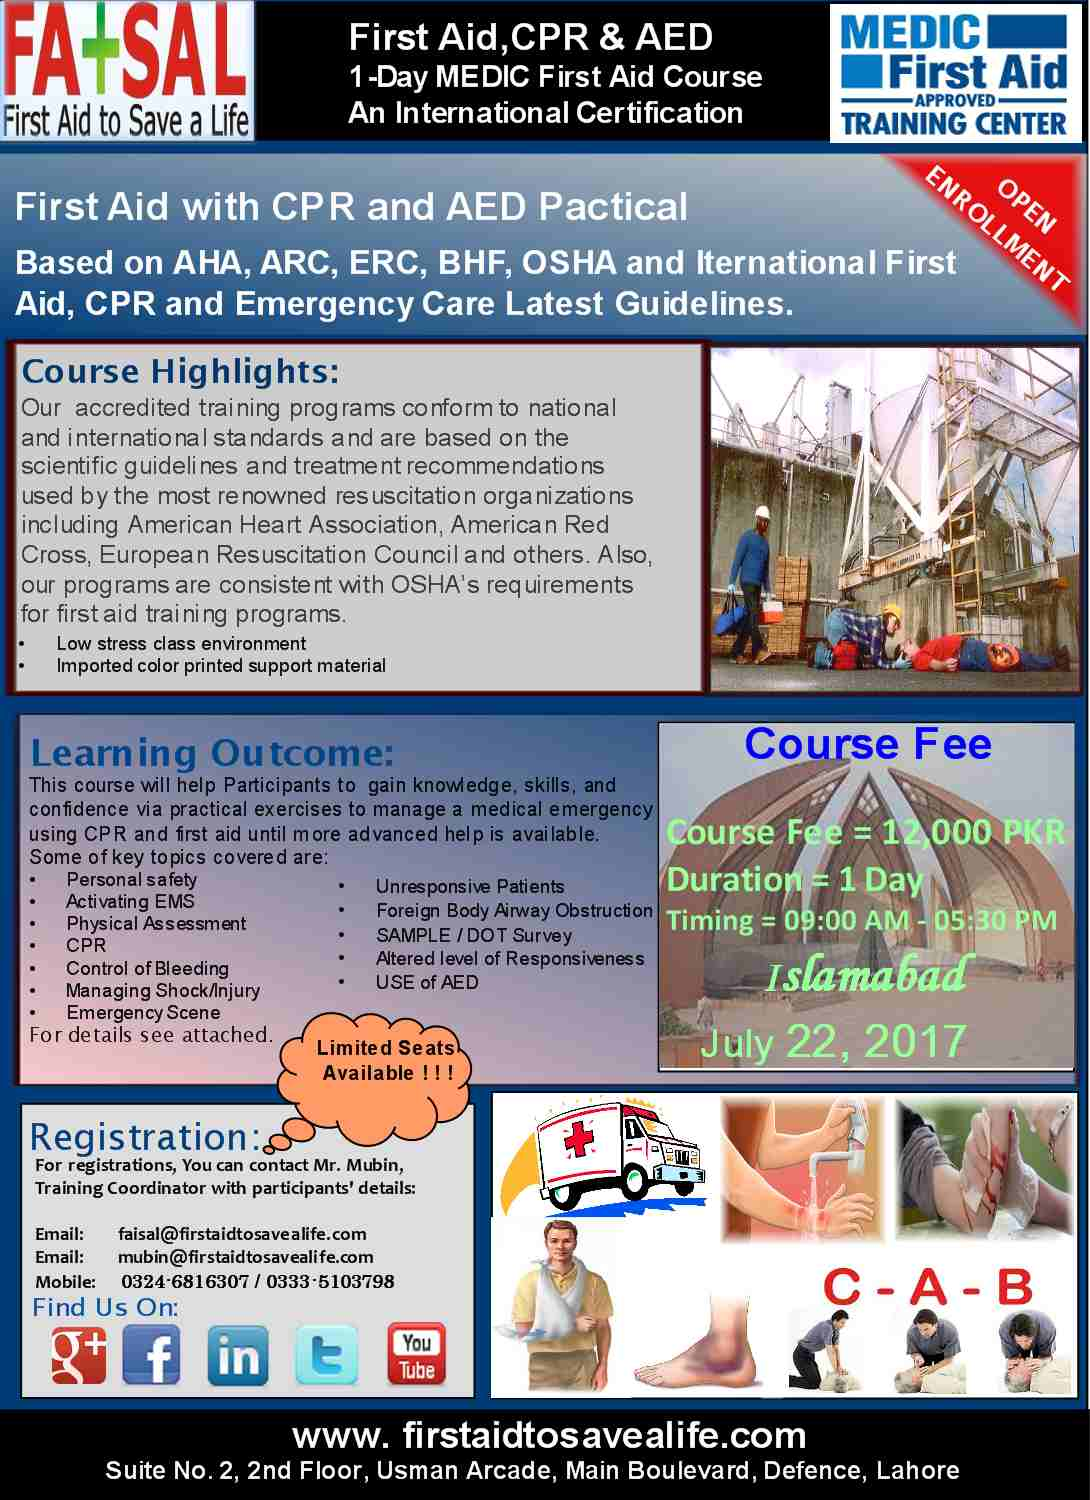 First Aid Cpr Aed Medic First Aid International Certification